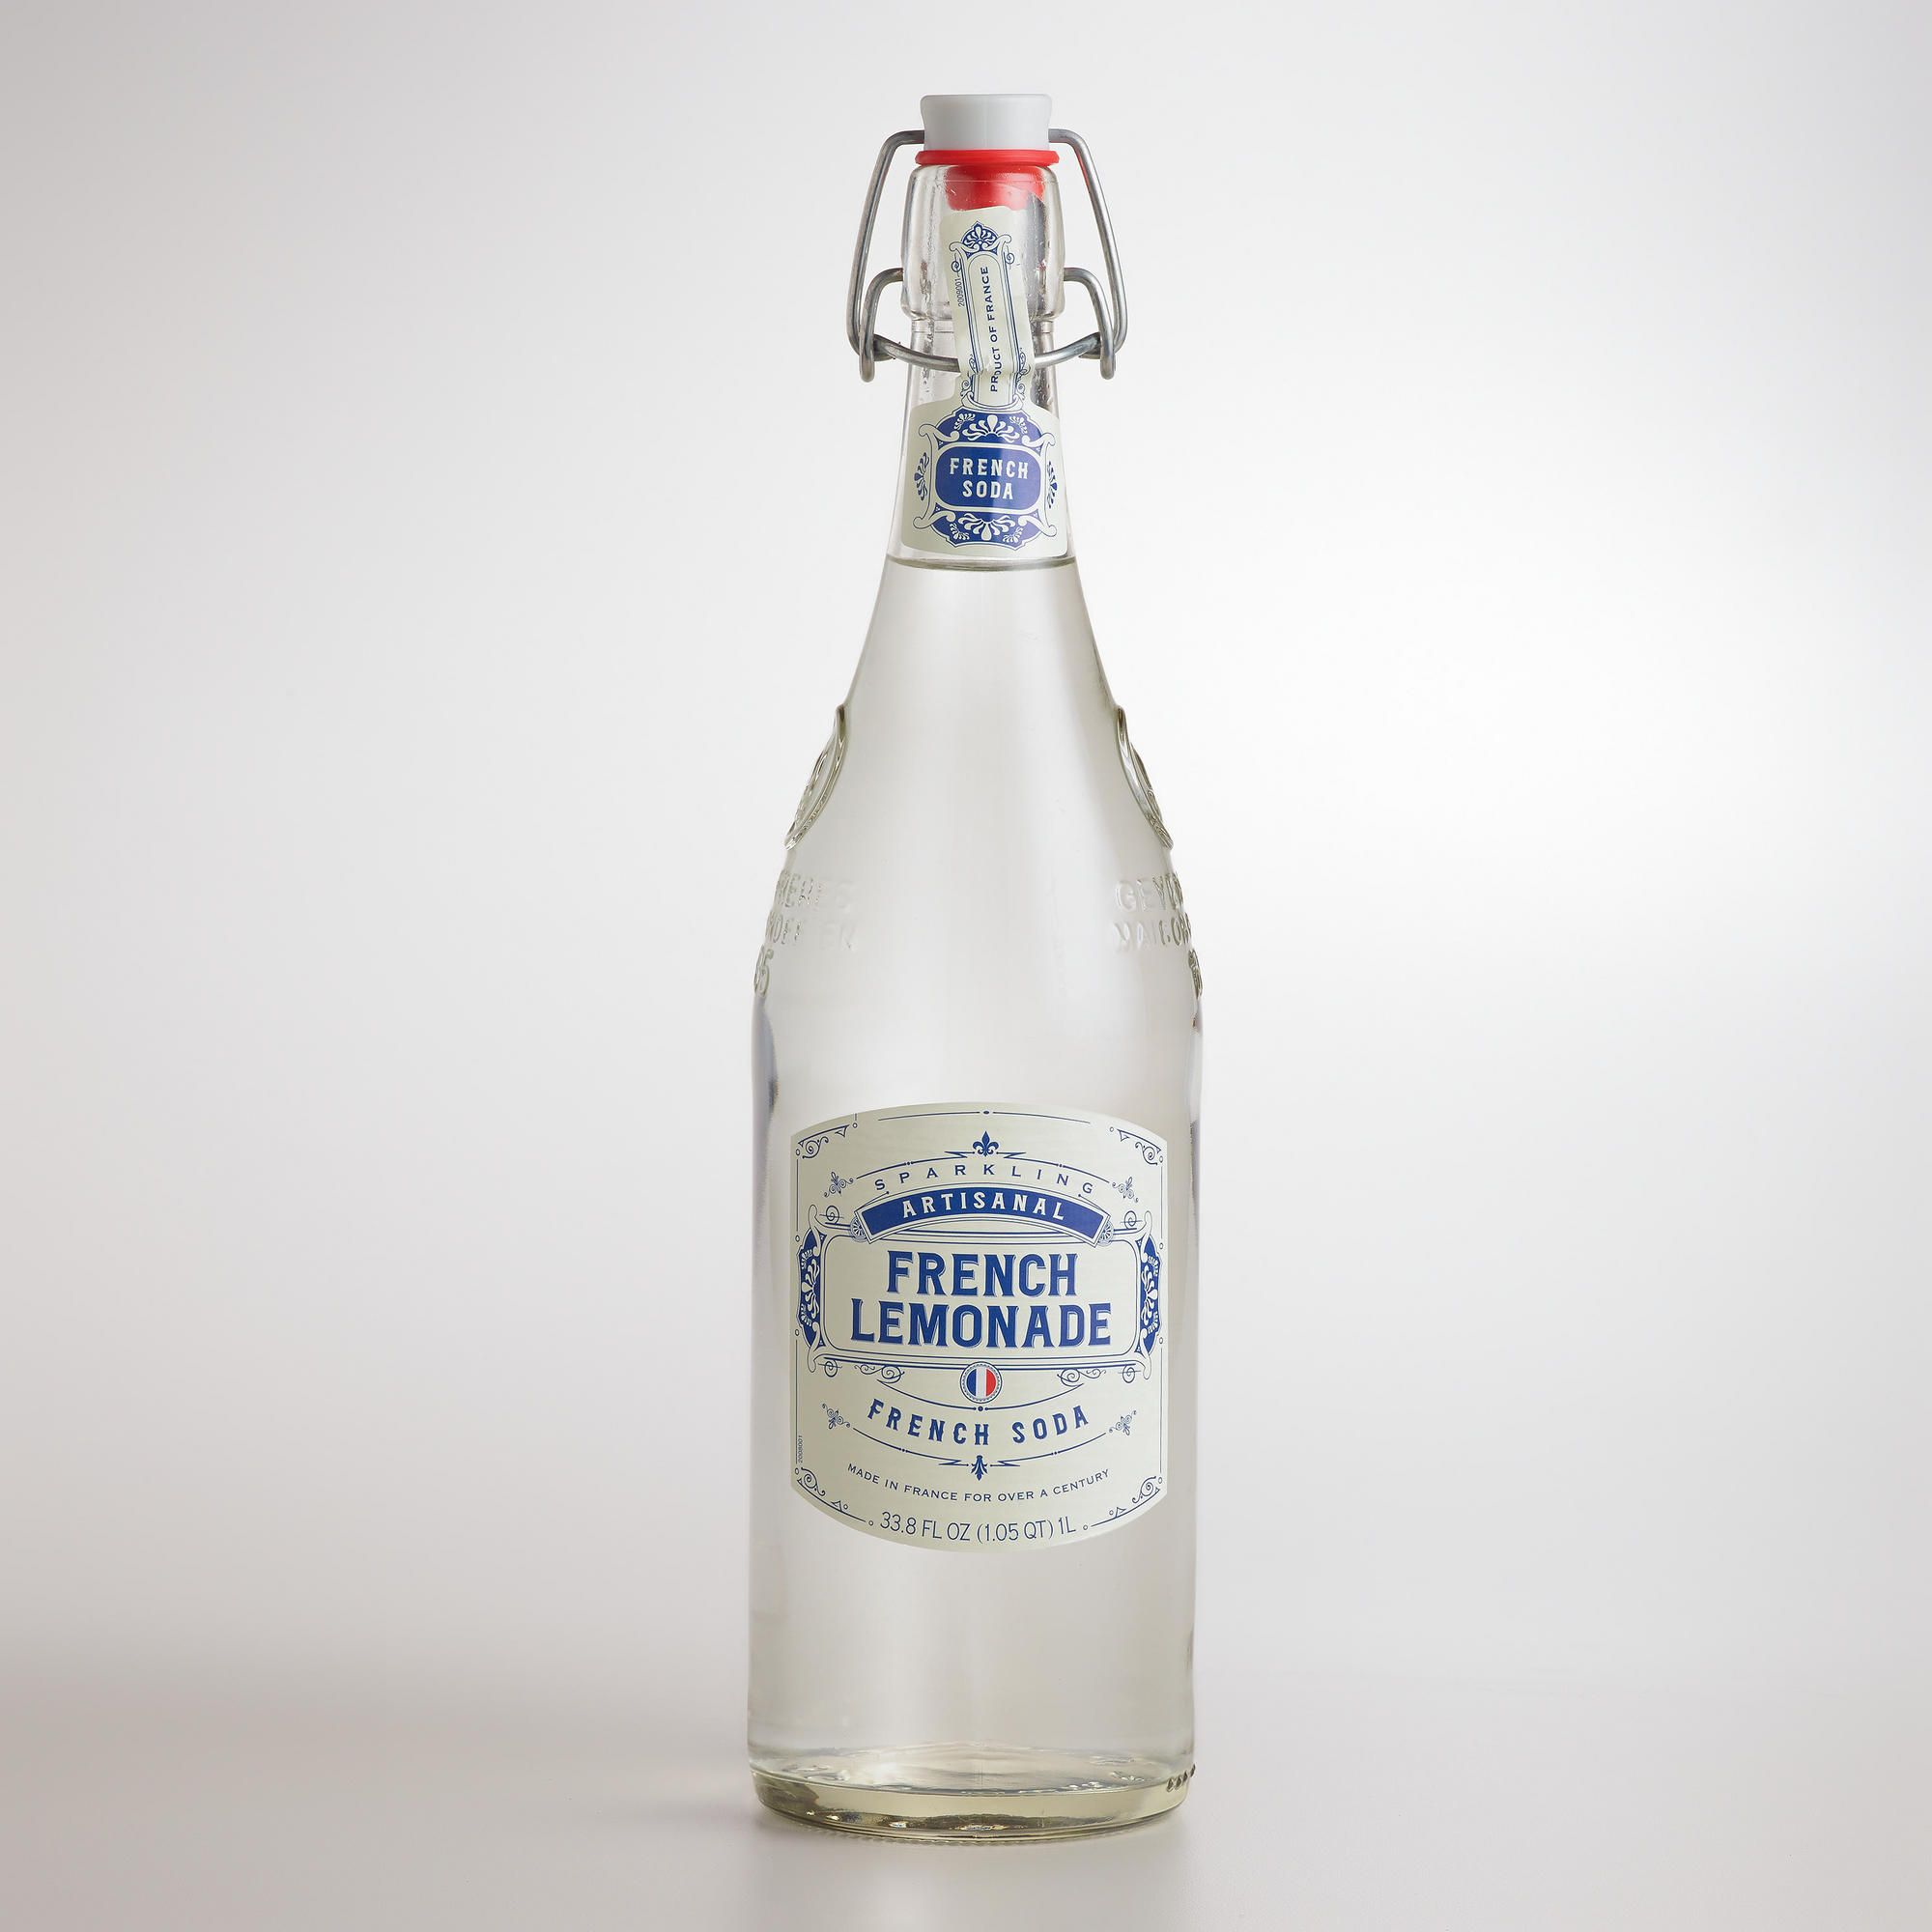 World Bazar: Artisanal Lemonade French Soda